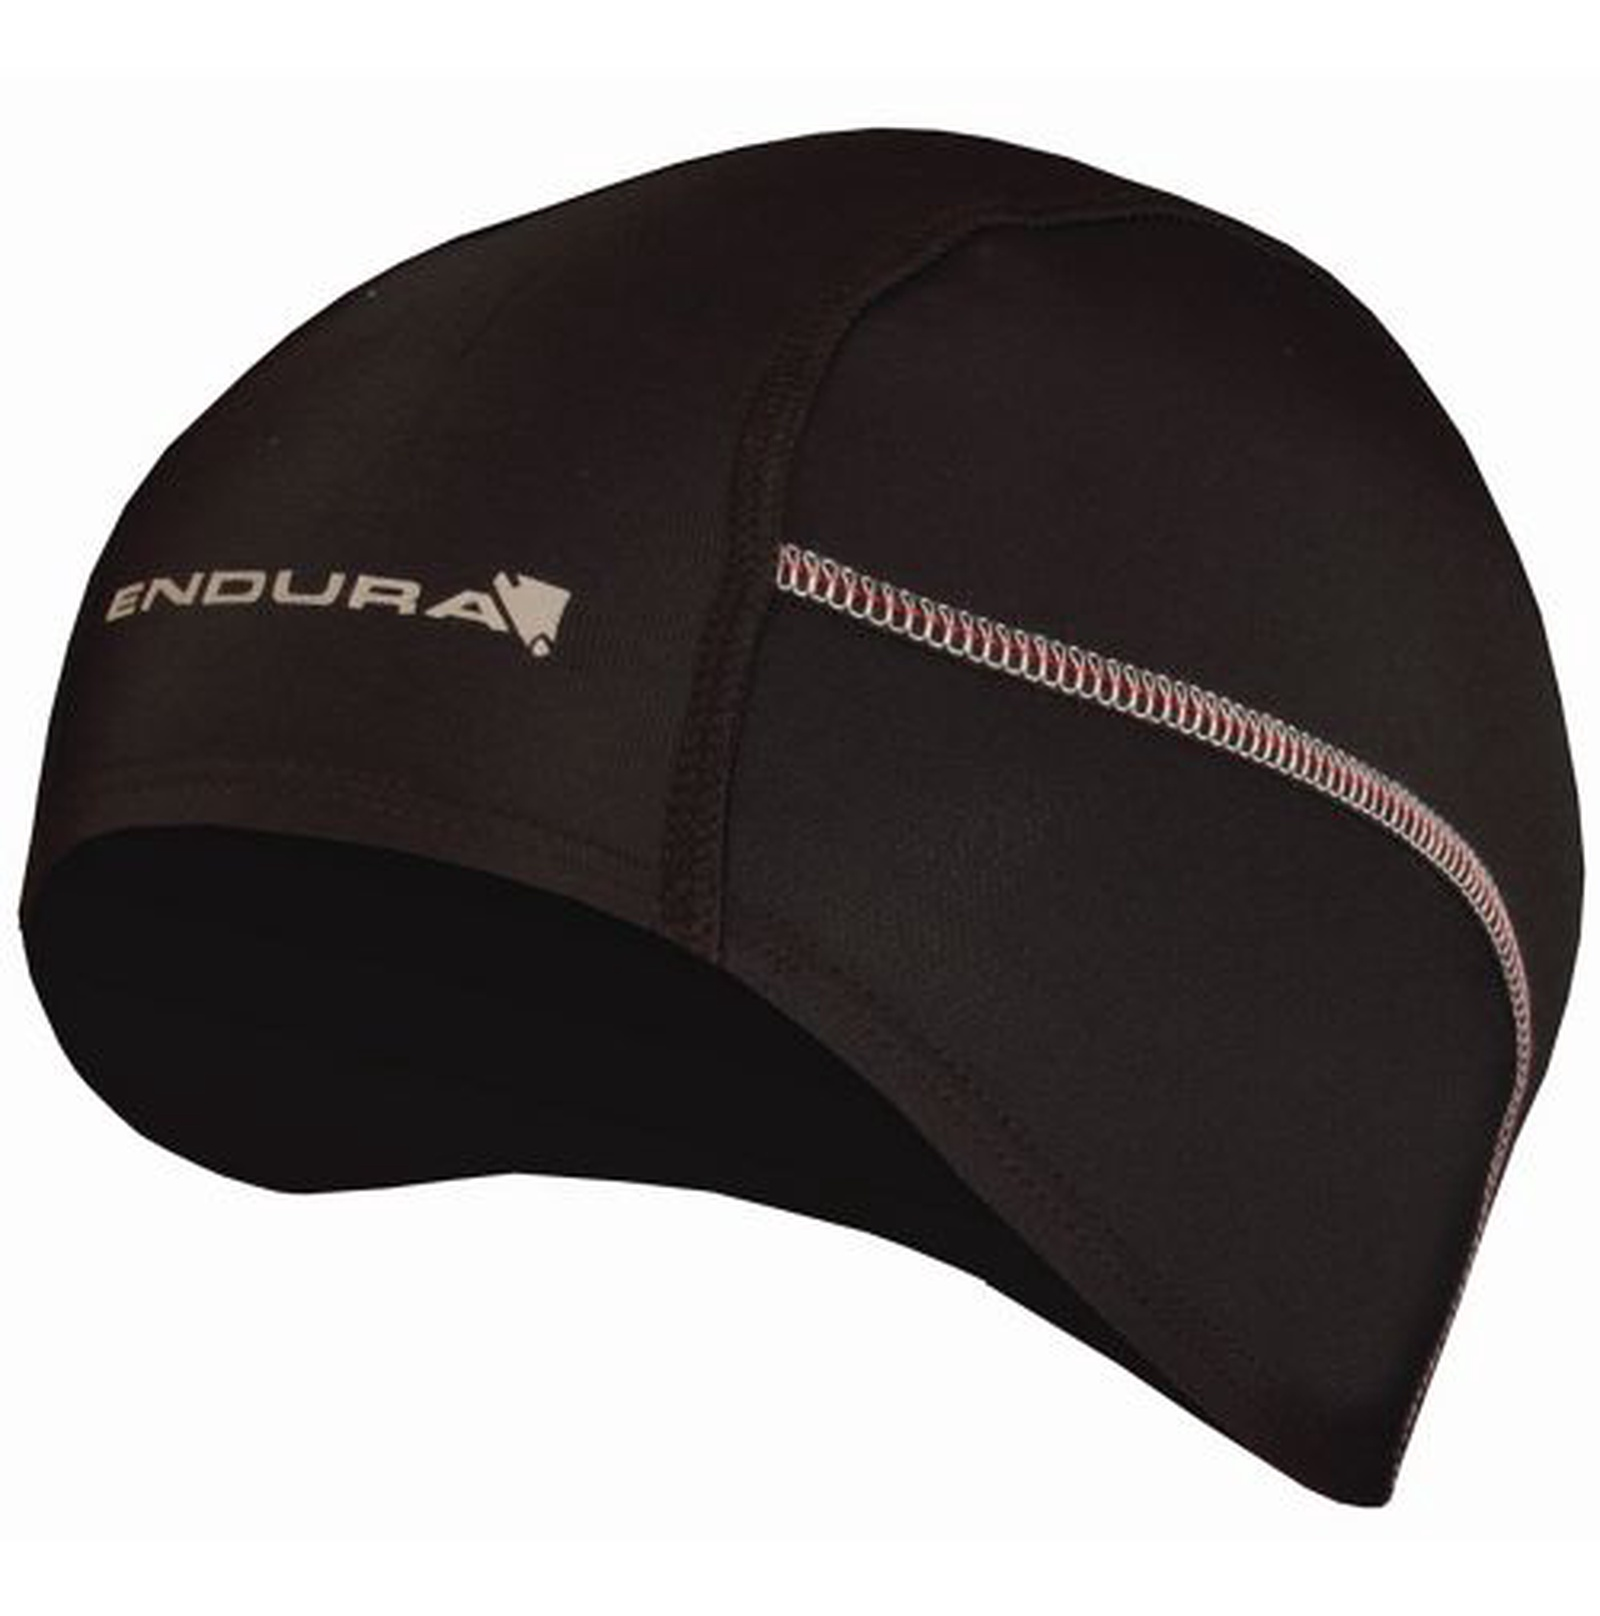 Windchill Skullcap Black